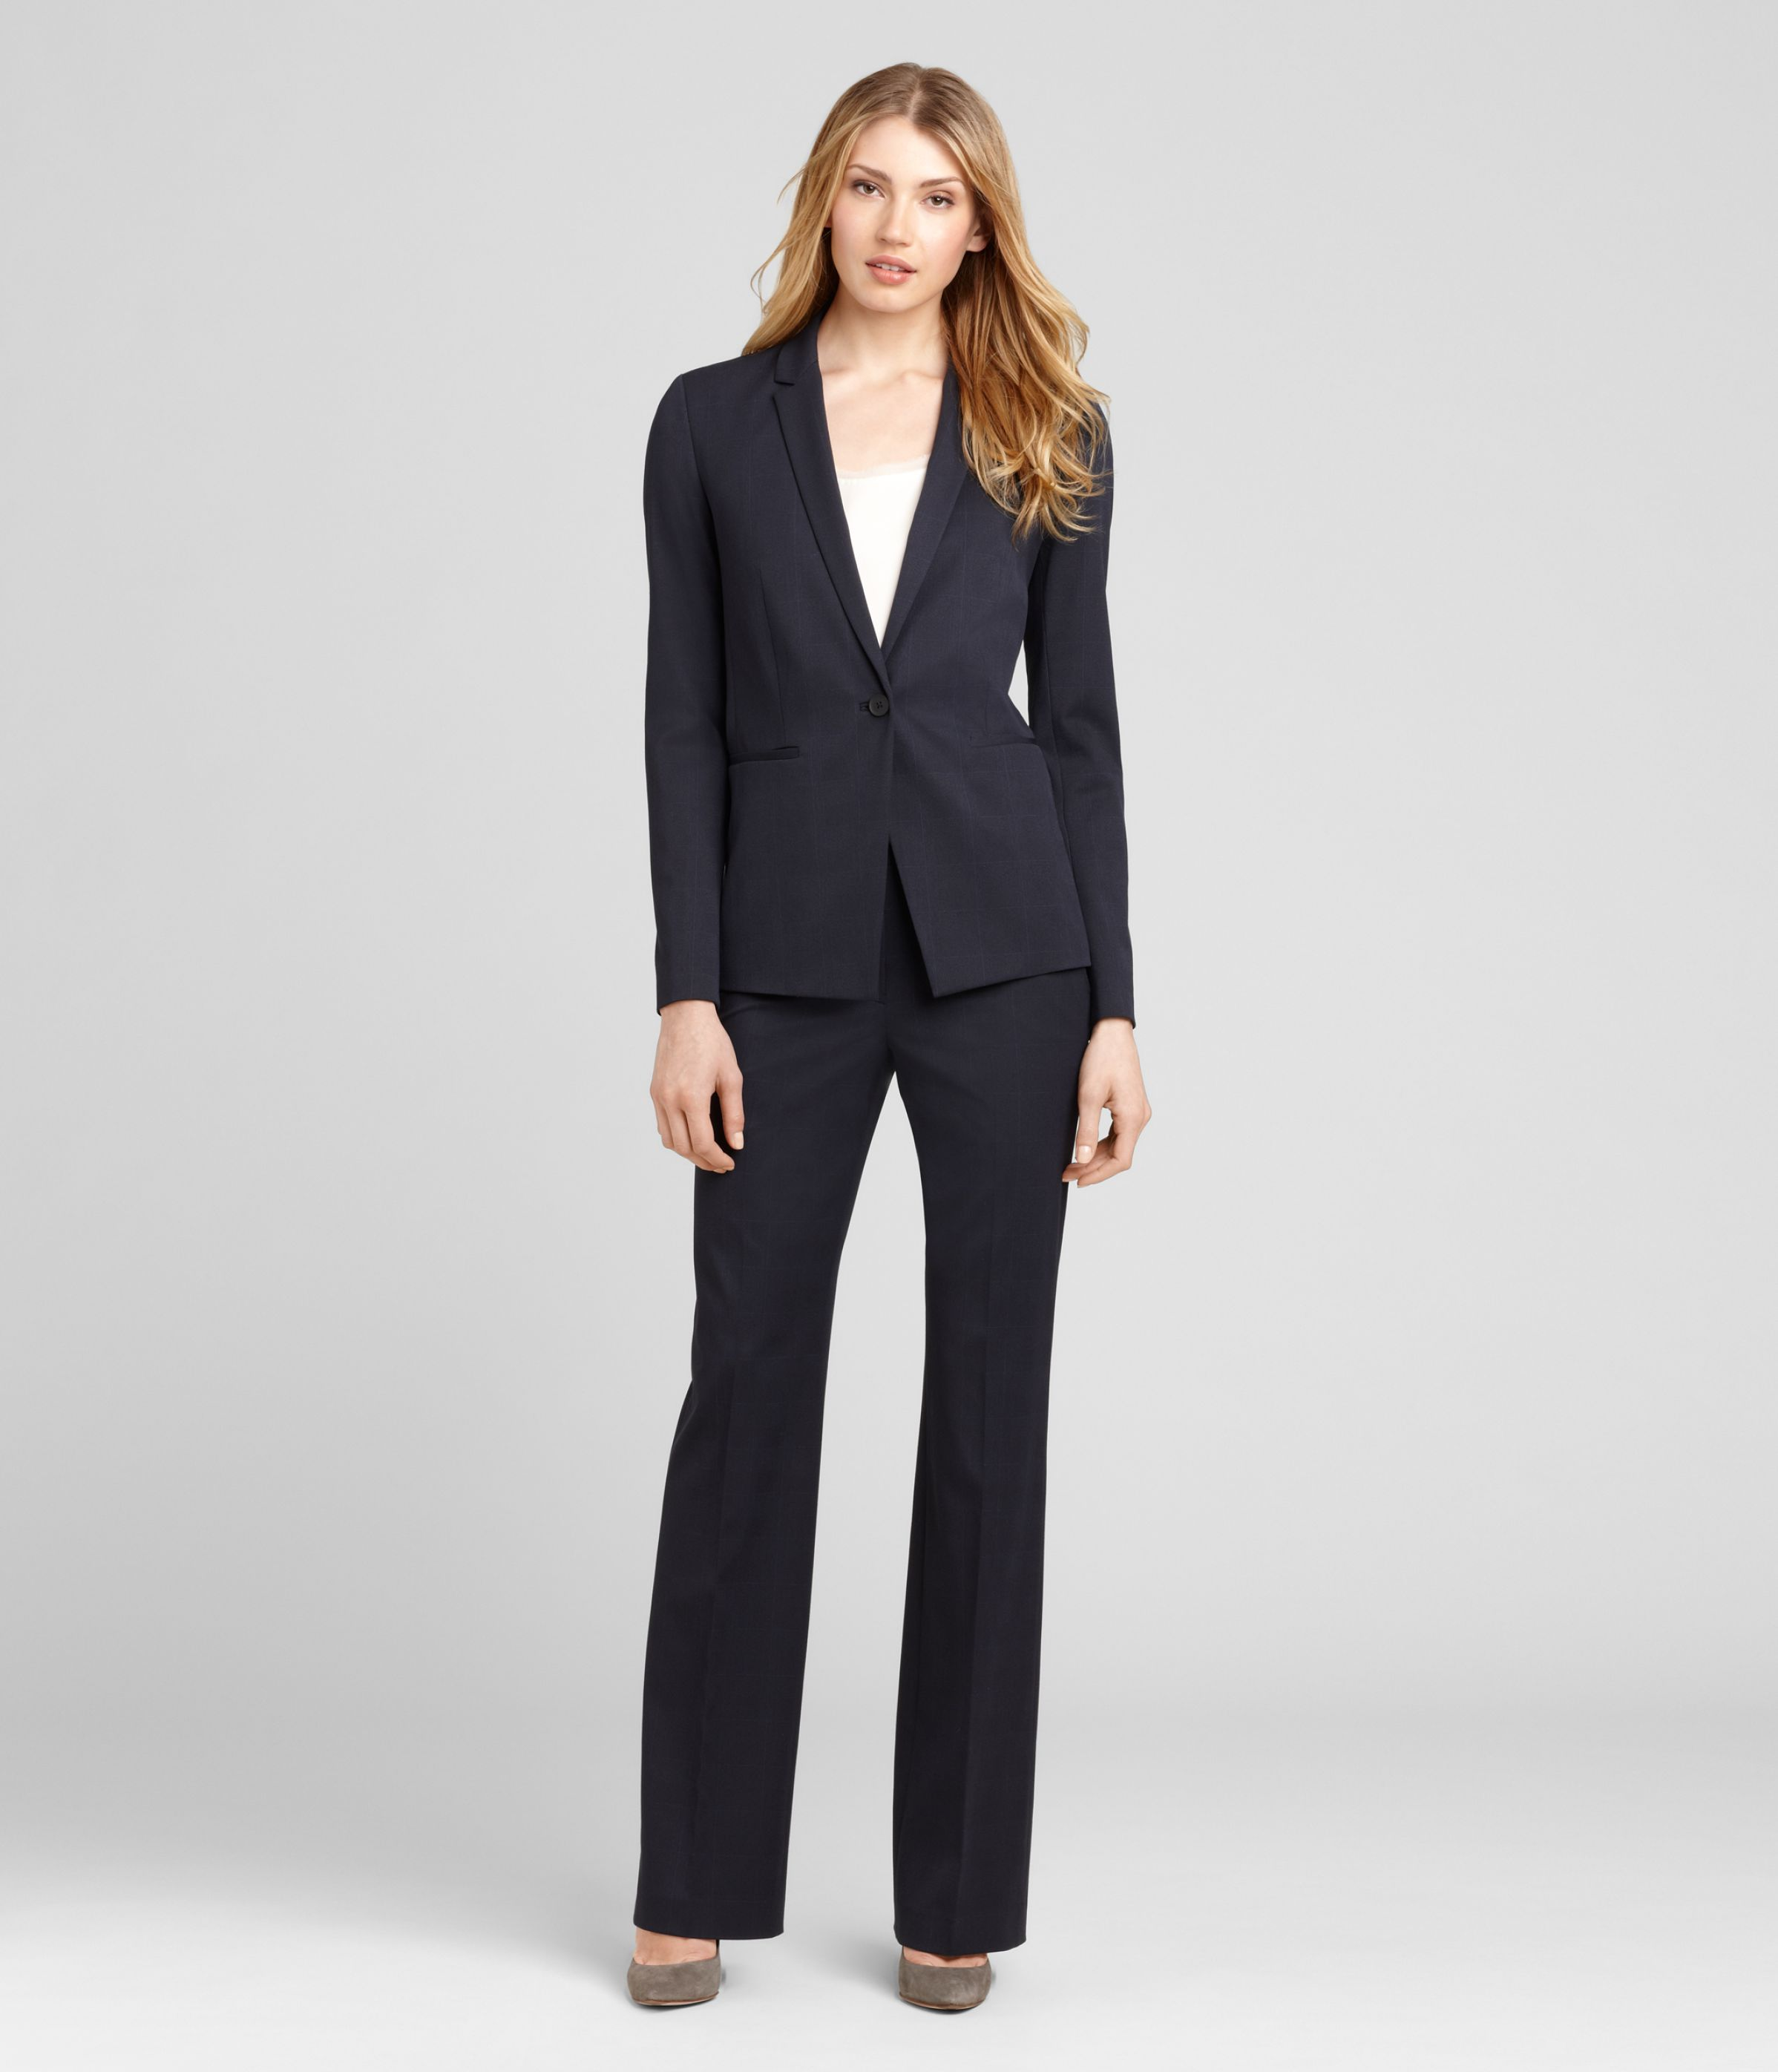 Simple  Khaki Green Slimfit Blazer And Wideleg Black Pants From Rachel Zoe